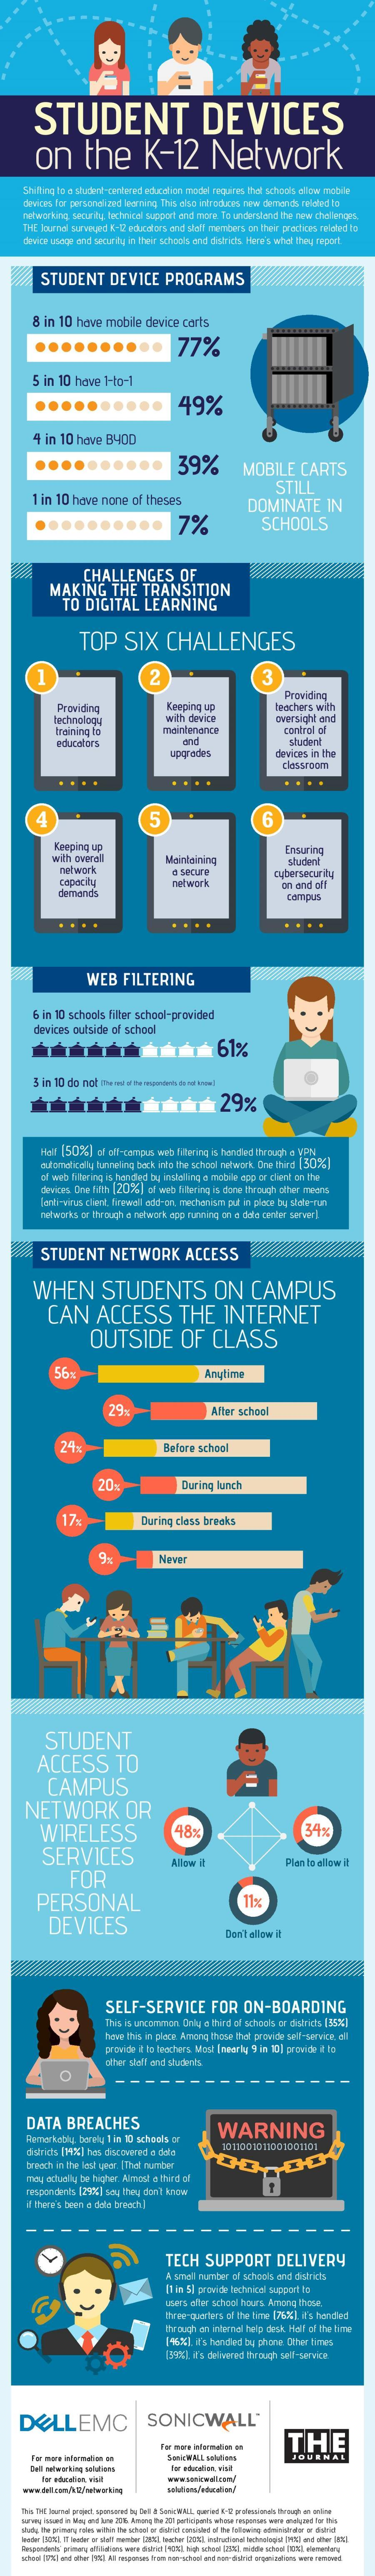 Student Devices on the K-12 Network Infographic